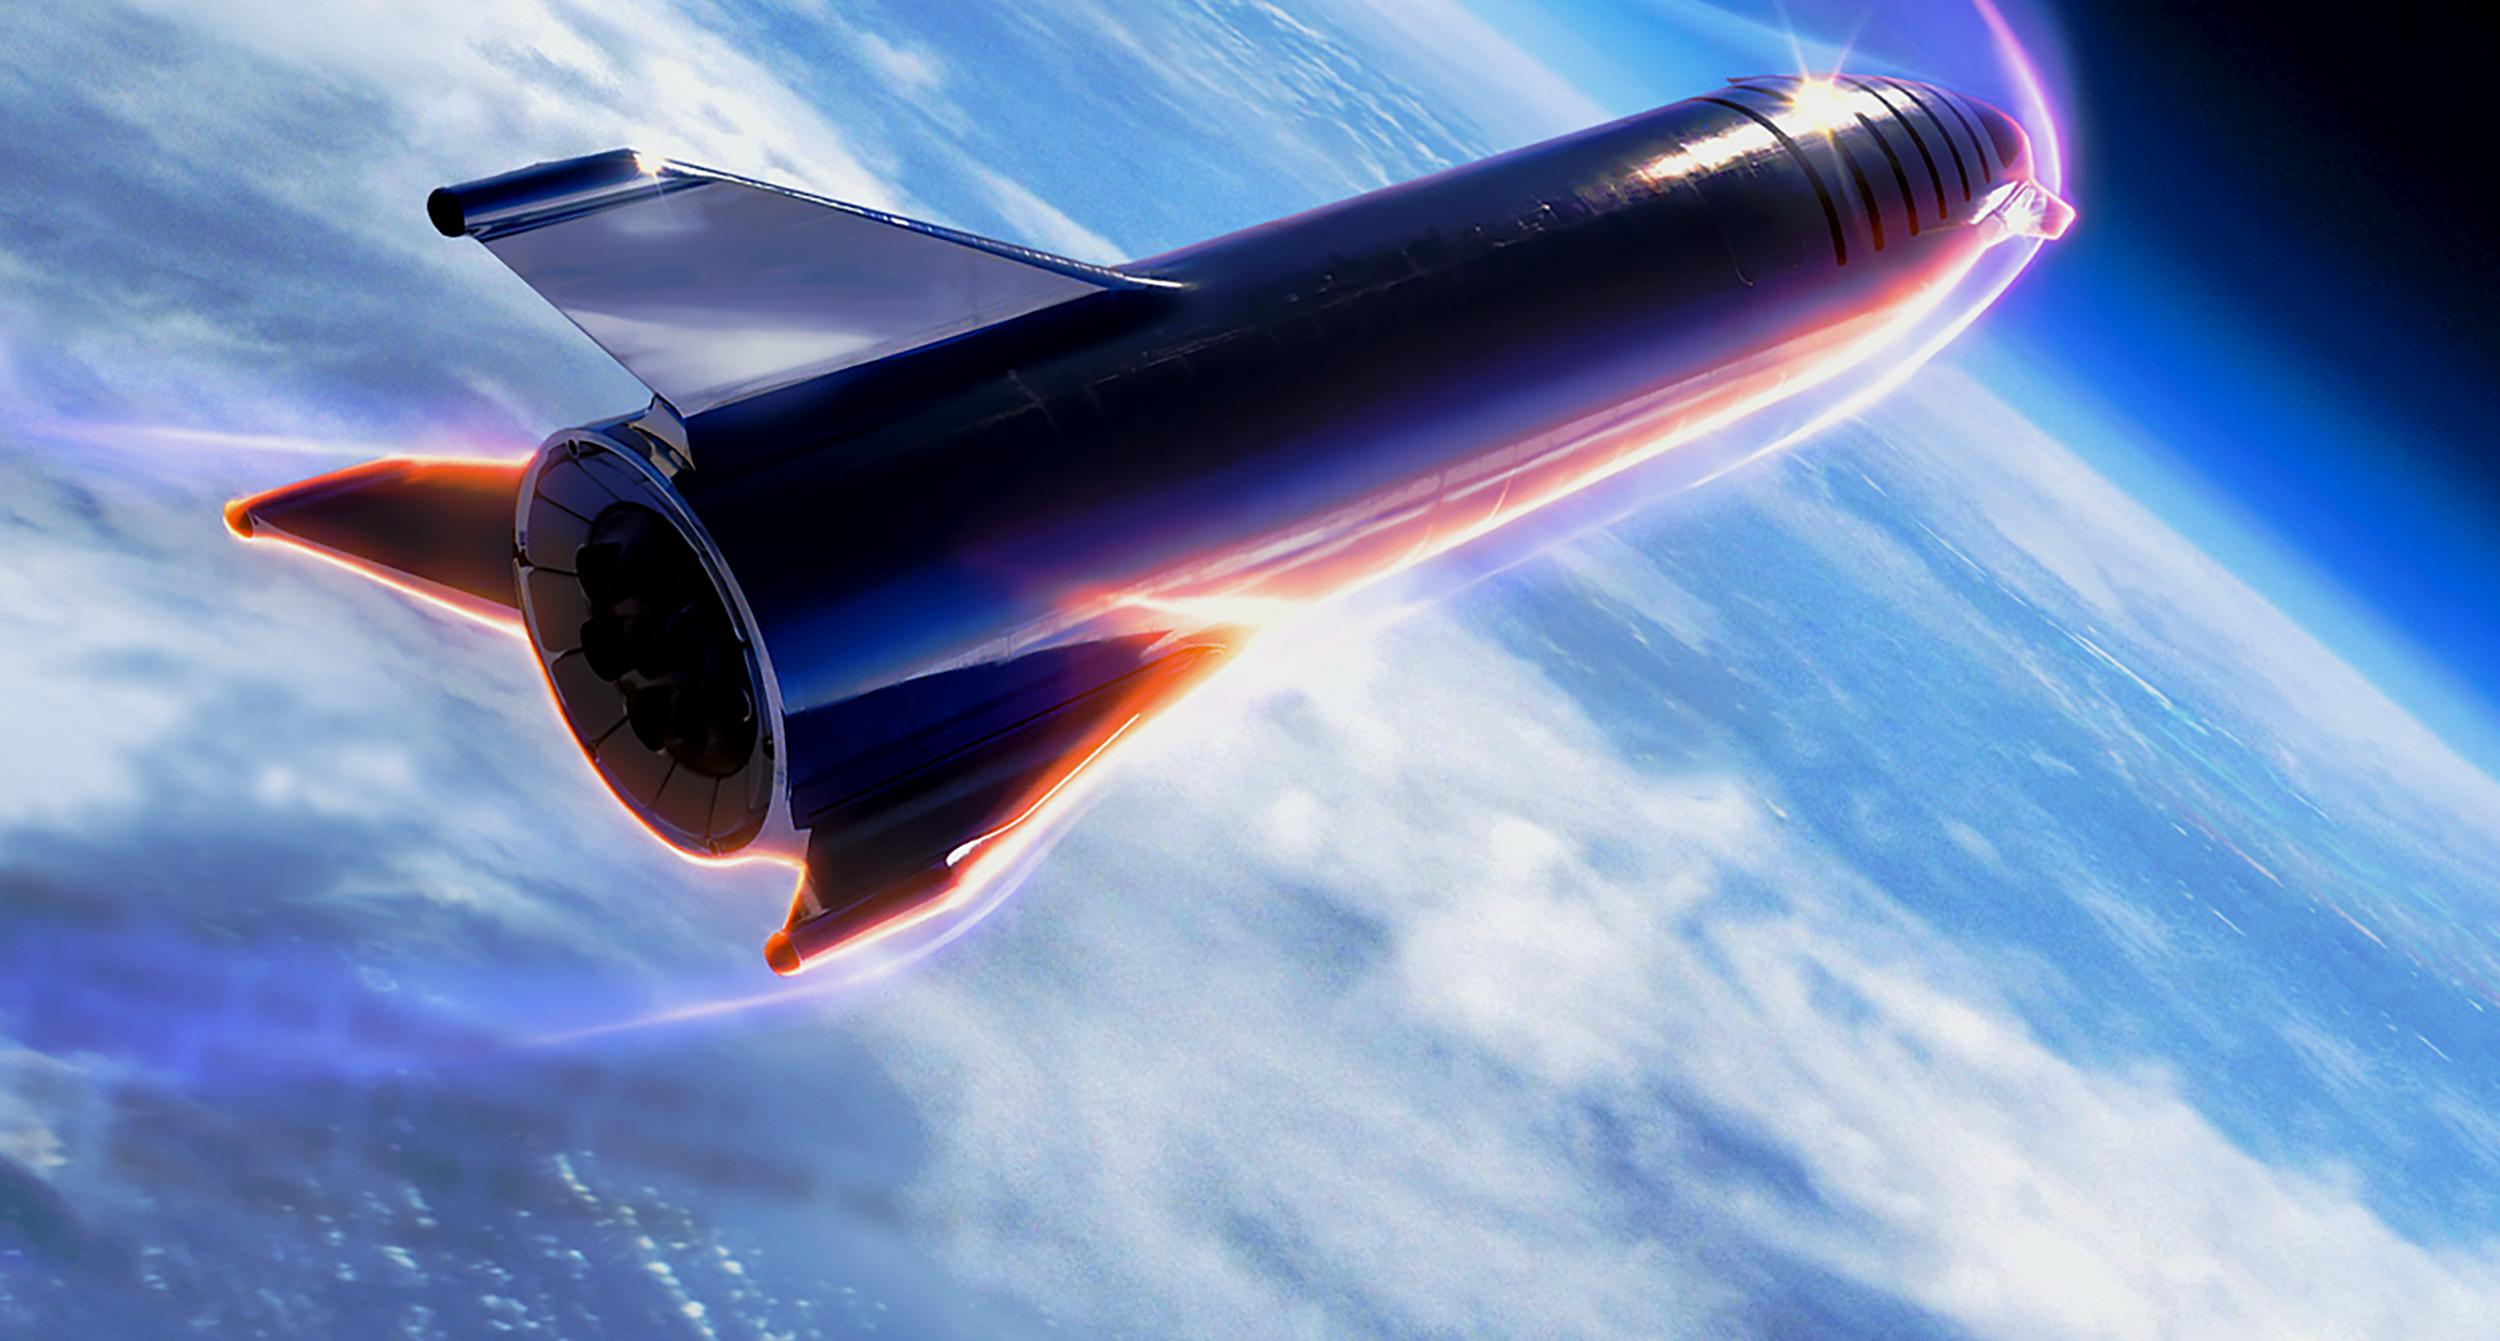 Starship reentry Earth SpaceX) 1 crop 5 edit